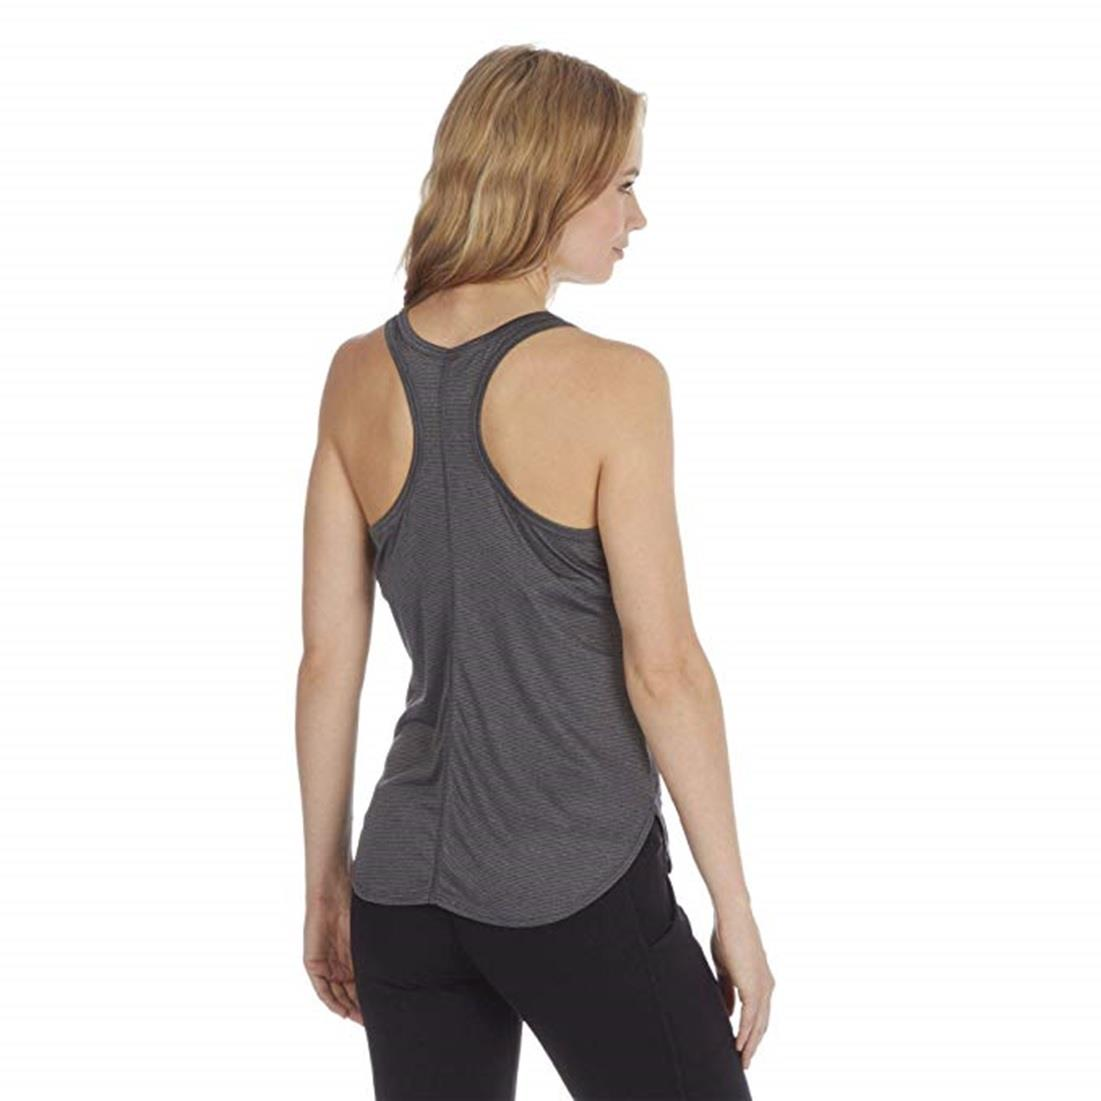 Ladies-Womens-Red-Tag-Active-Racer-Back-Yoga-Gym-Exercise-Vest-Tank-Top thumbnail 5